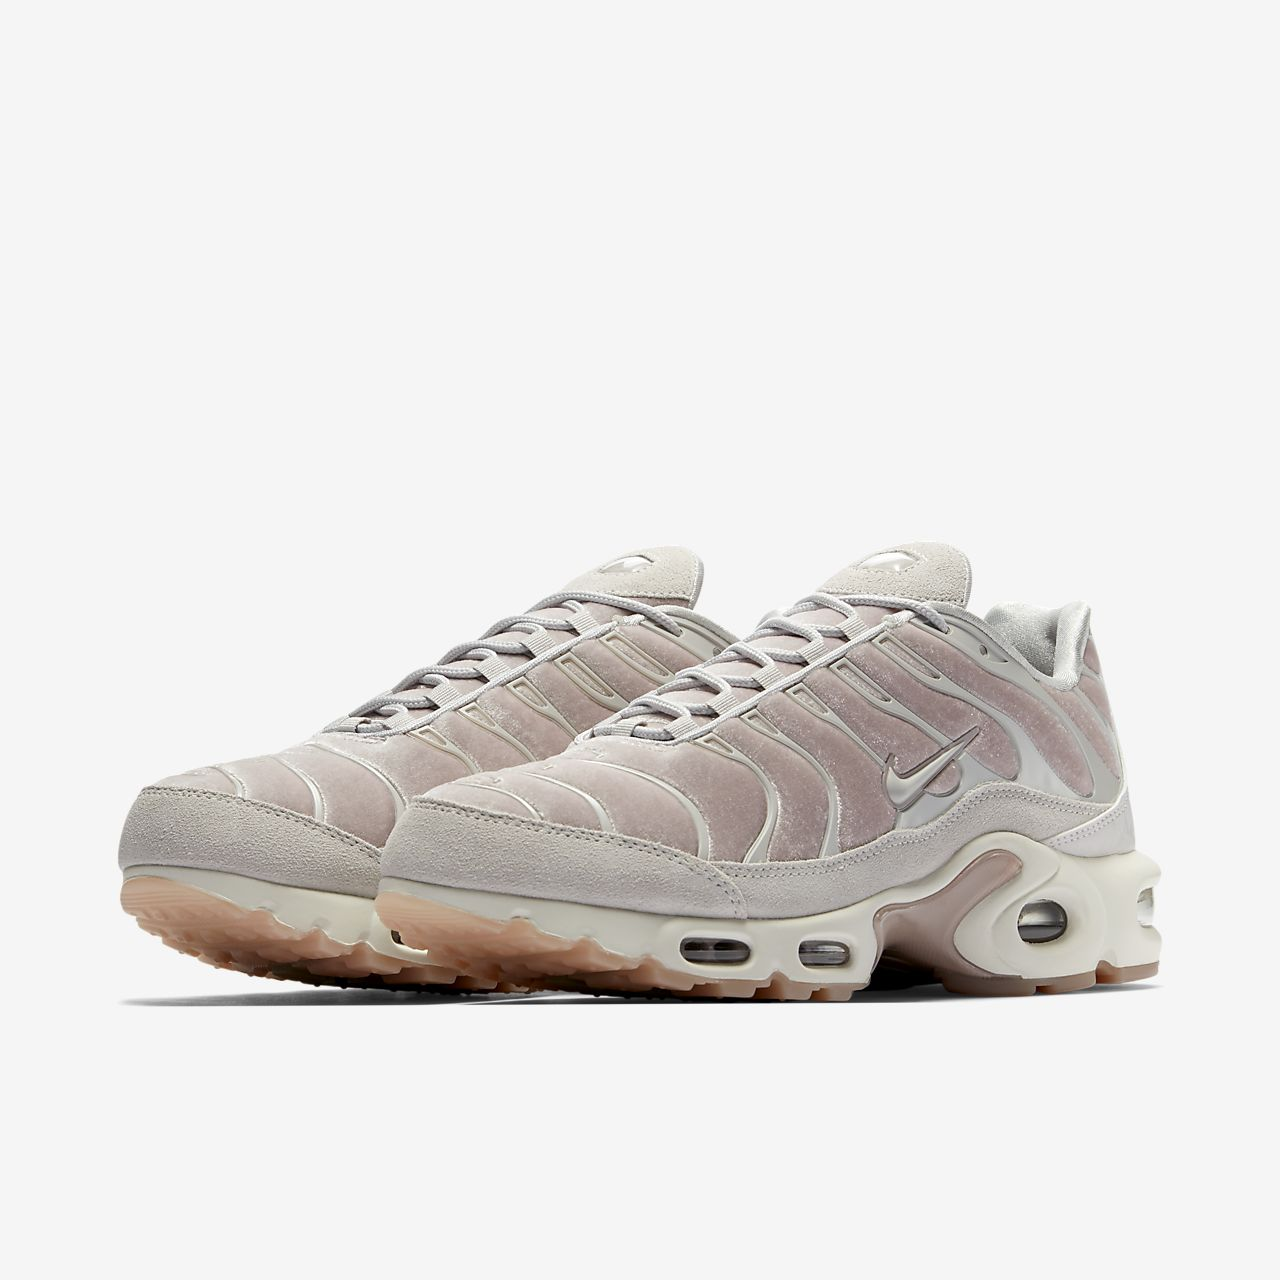 nike air max plus tn donna